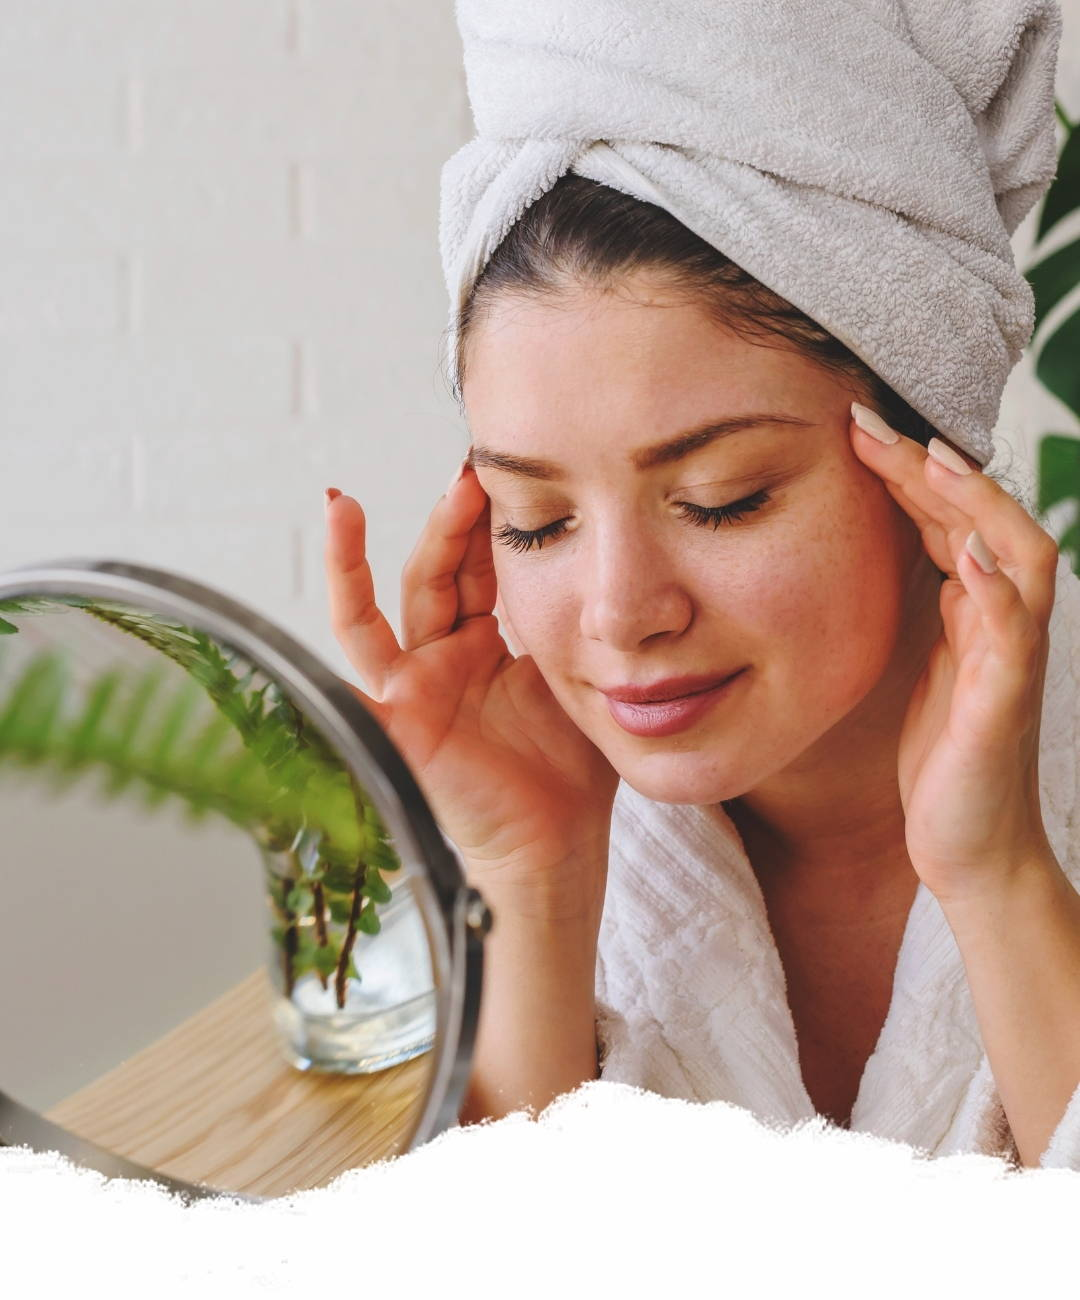 How to use Argan Oil?